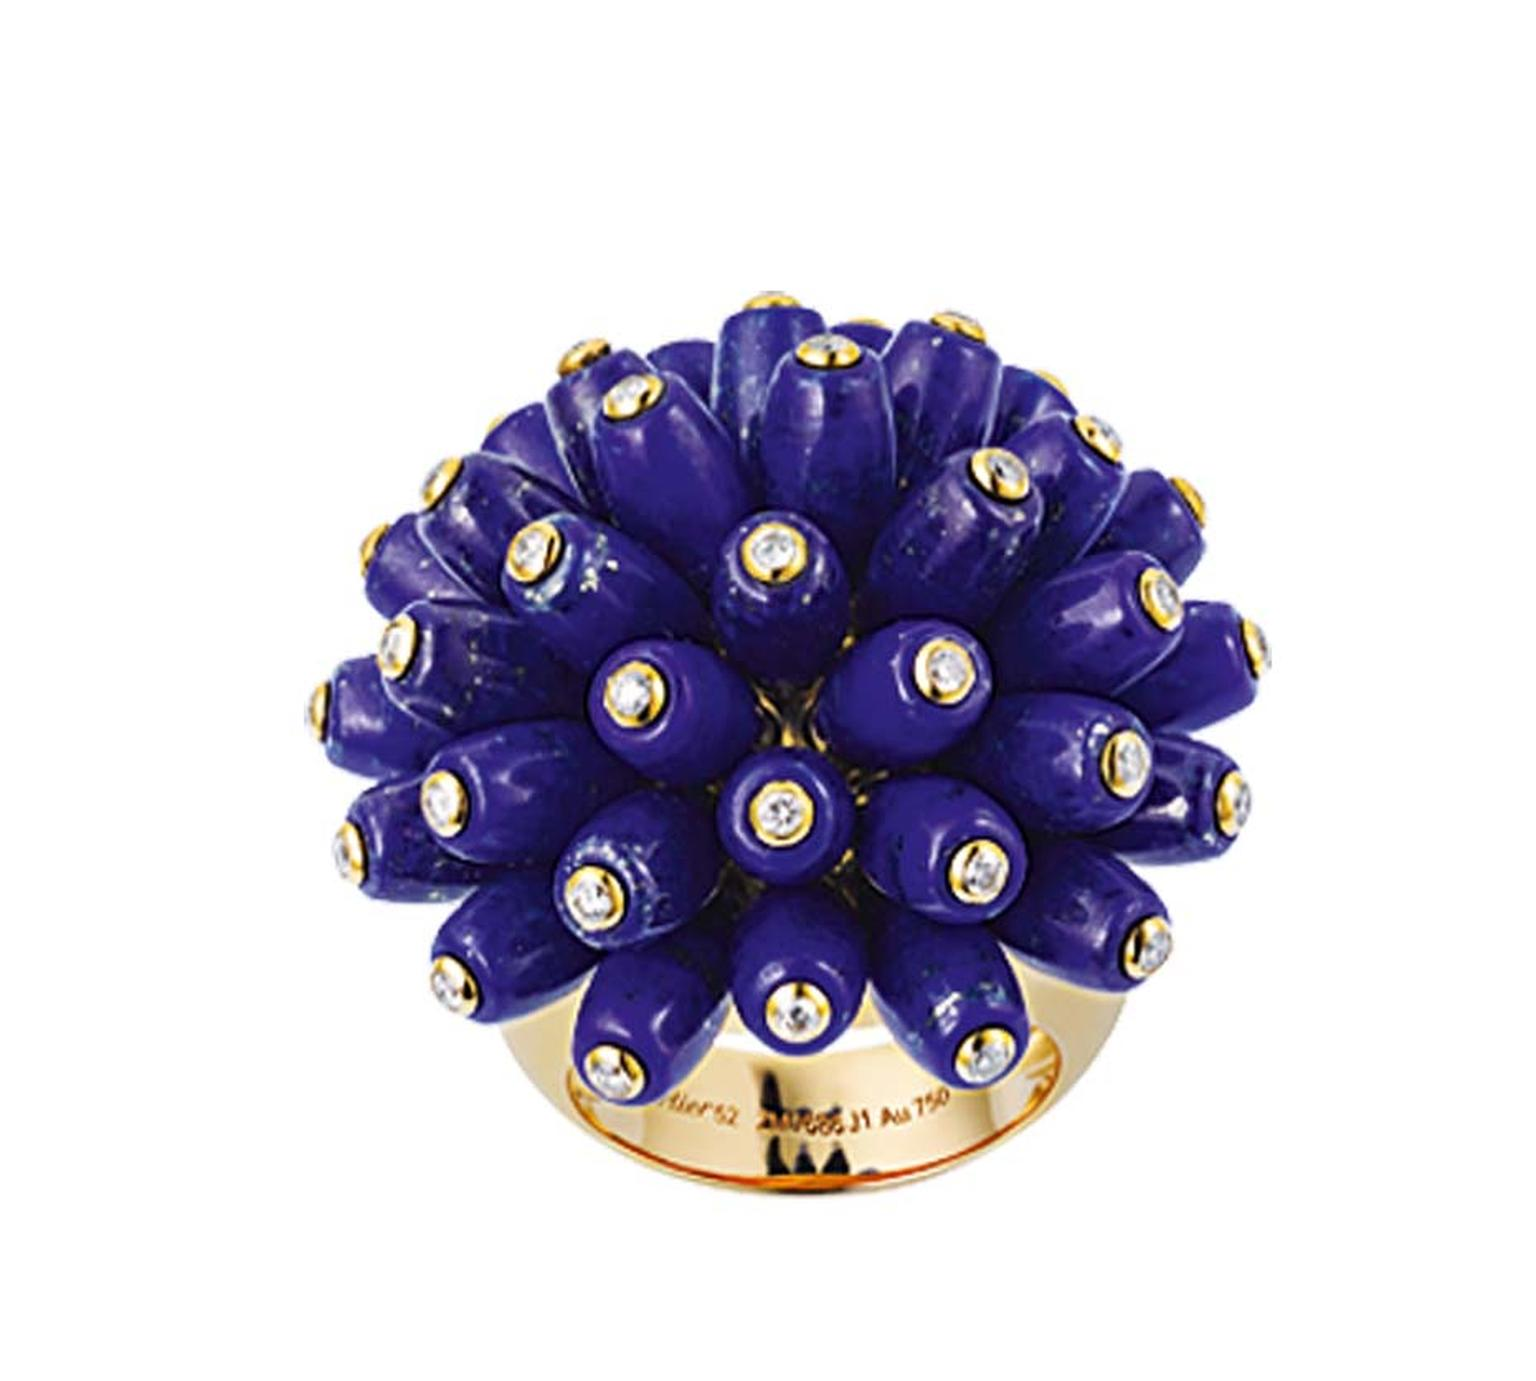 The unique design of this Cartier ring, with its lapis lazuli tubes dotted with diamonds that writhe and wriggle, brings Cartier jewellery bang into the 21st century.